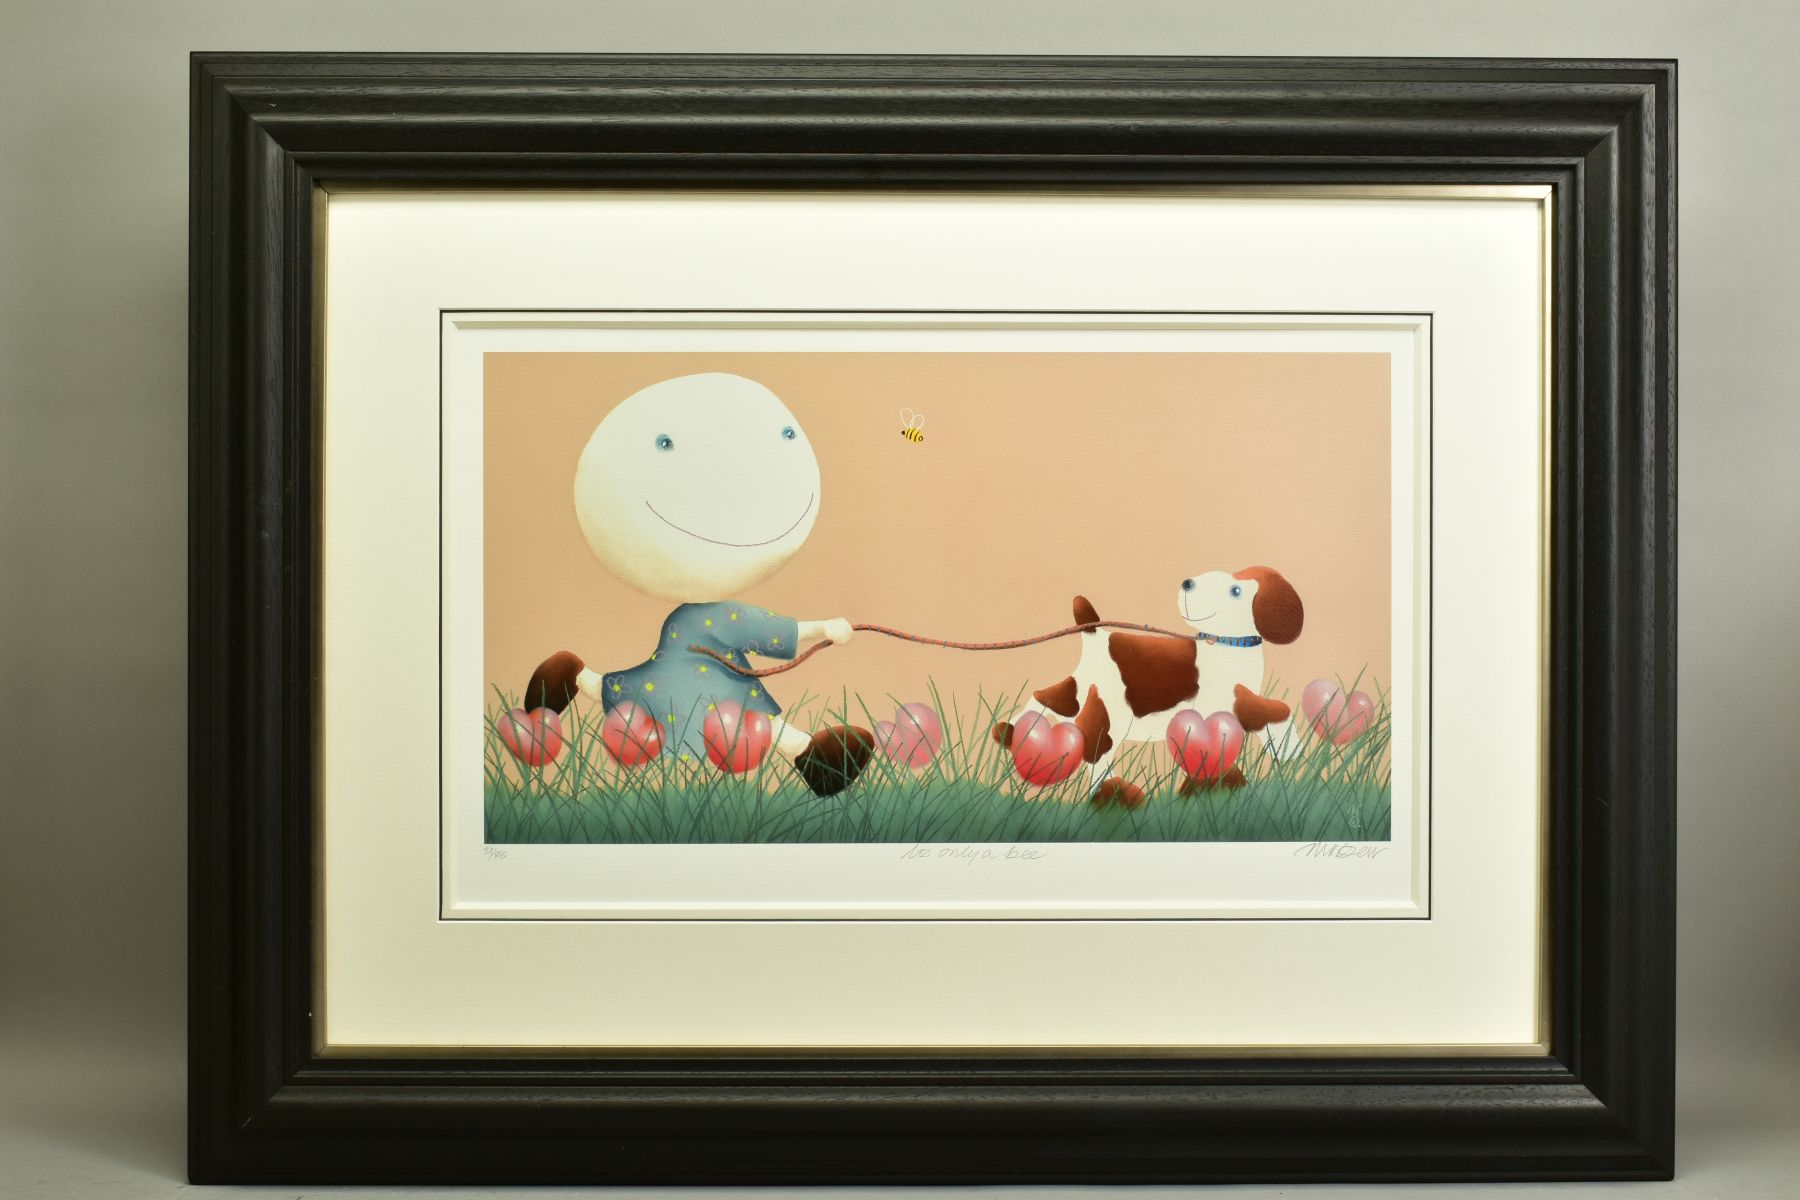 MACKENZIE THORPE (BRITISH 1956), 'It's Only A Bee', a Limited Edition print of a girl and her dog,